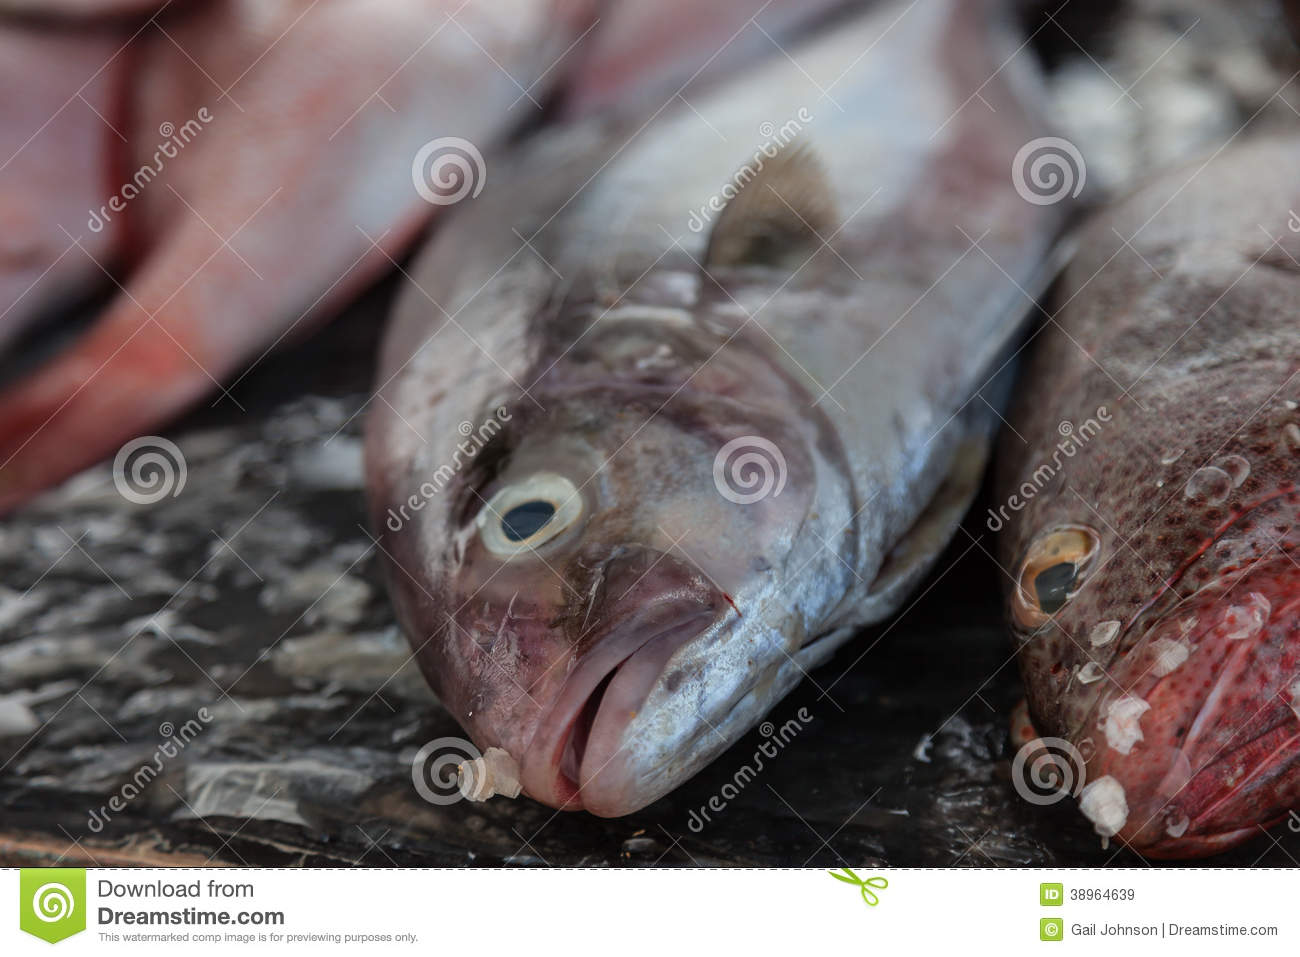 Fish for sale stock photo image 38964639 for Stock fish for sale